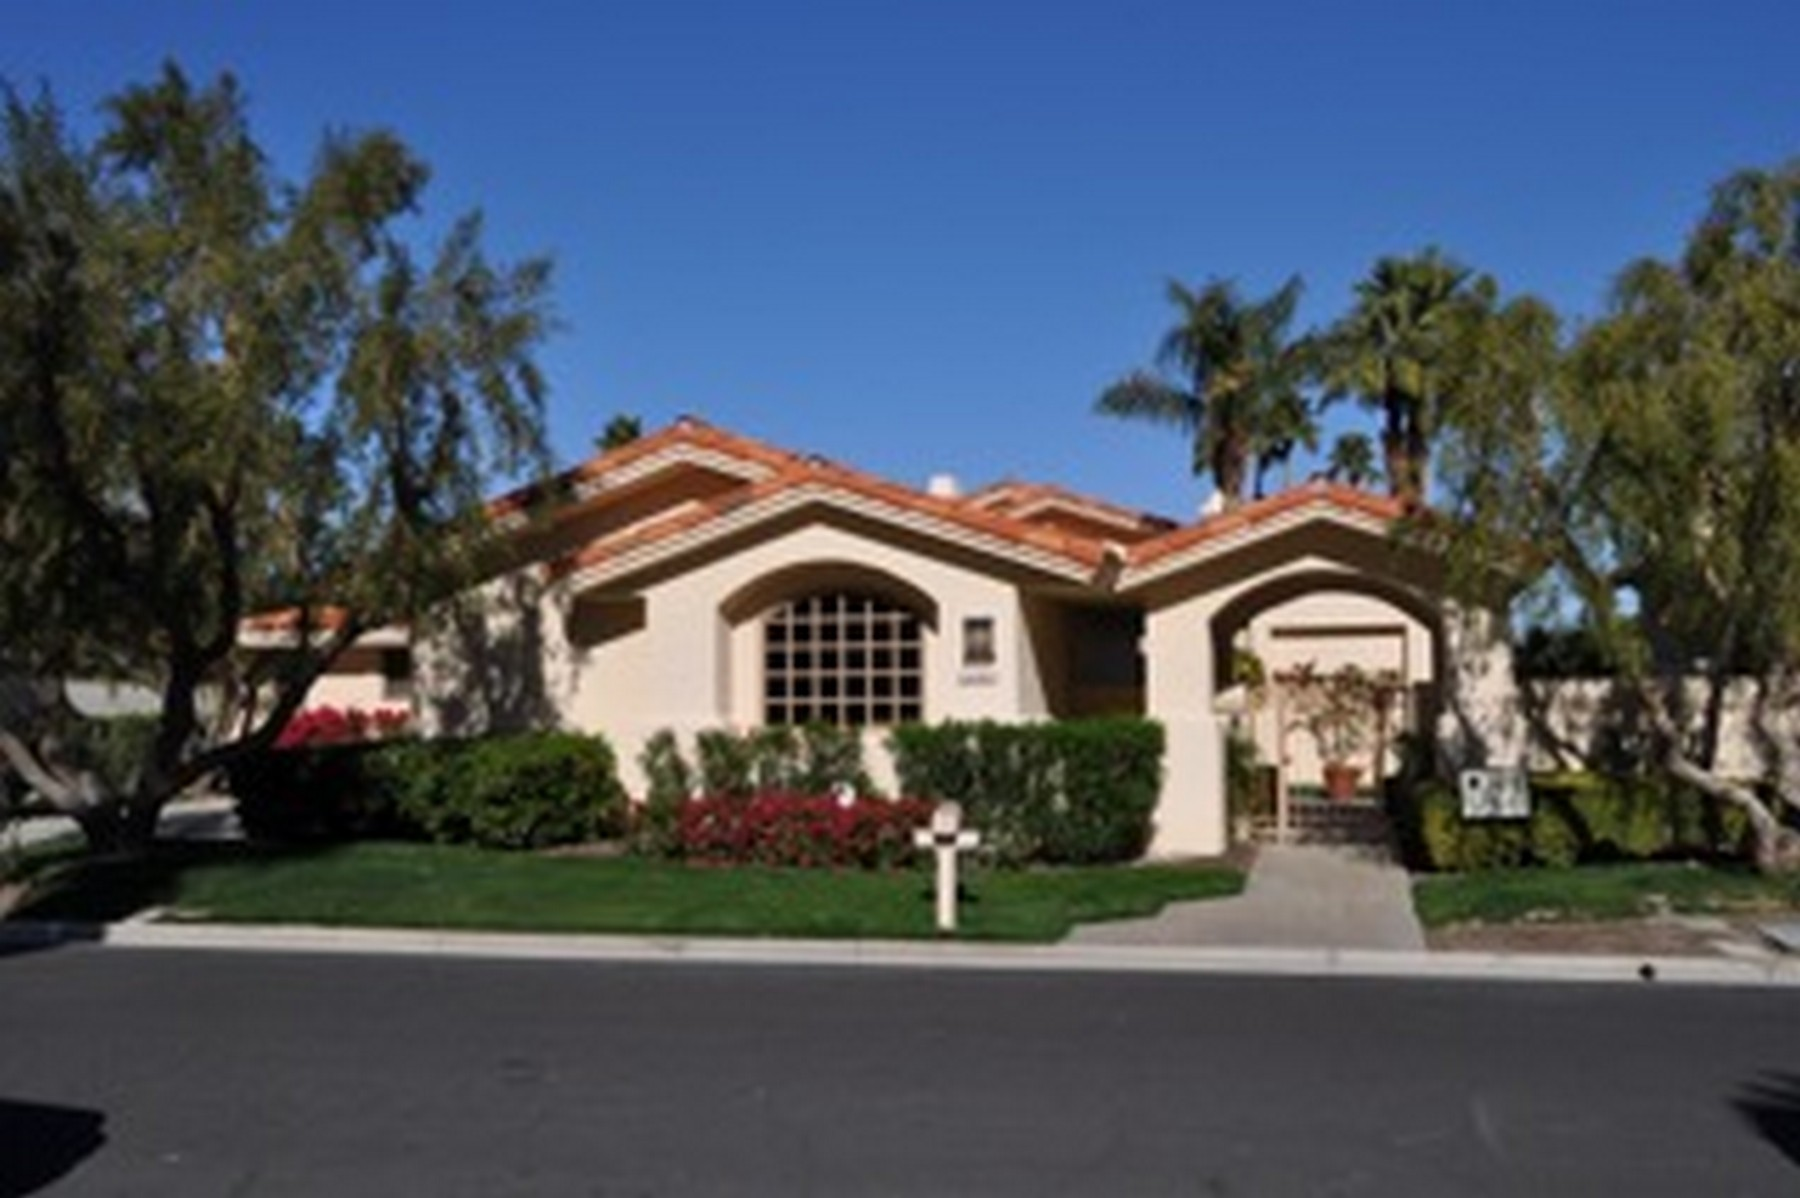 Single Family Home for Sale at 54400 Riviera La Quinta, California 92253 United States